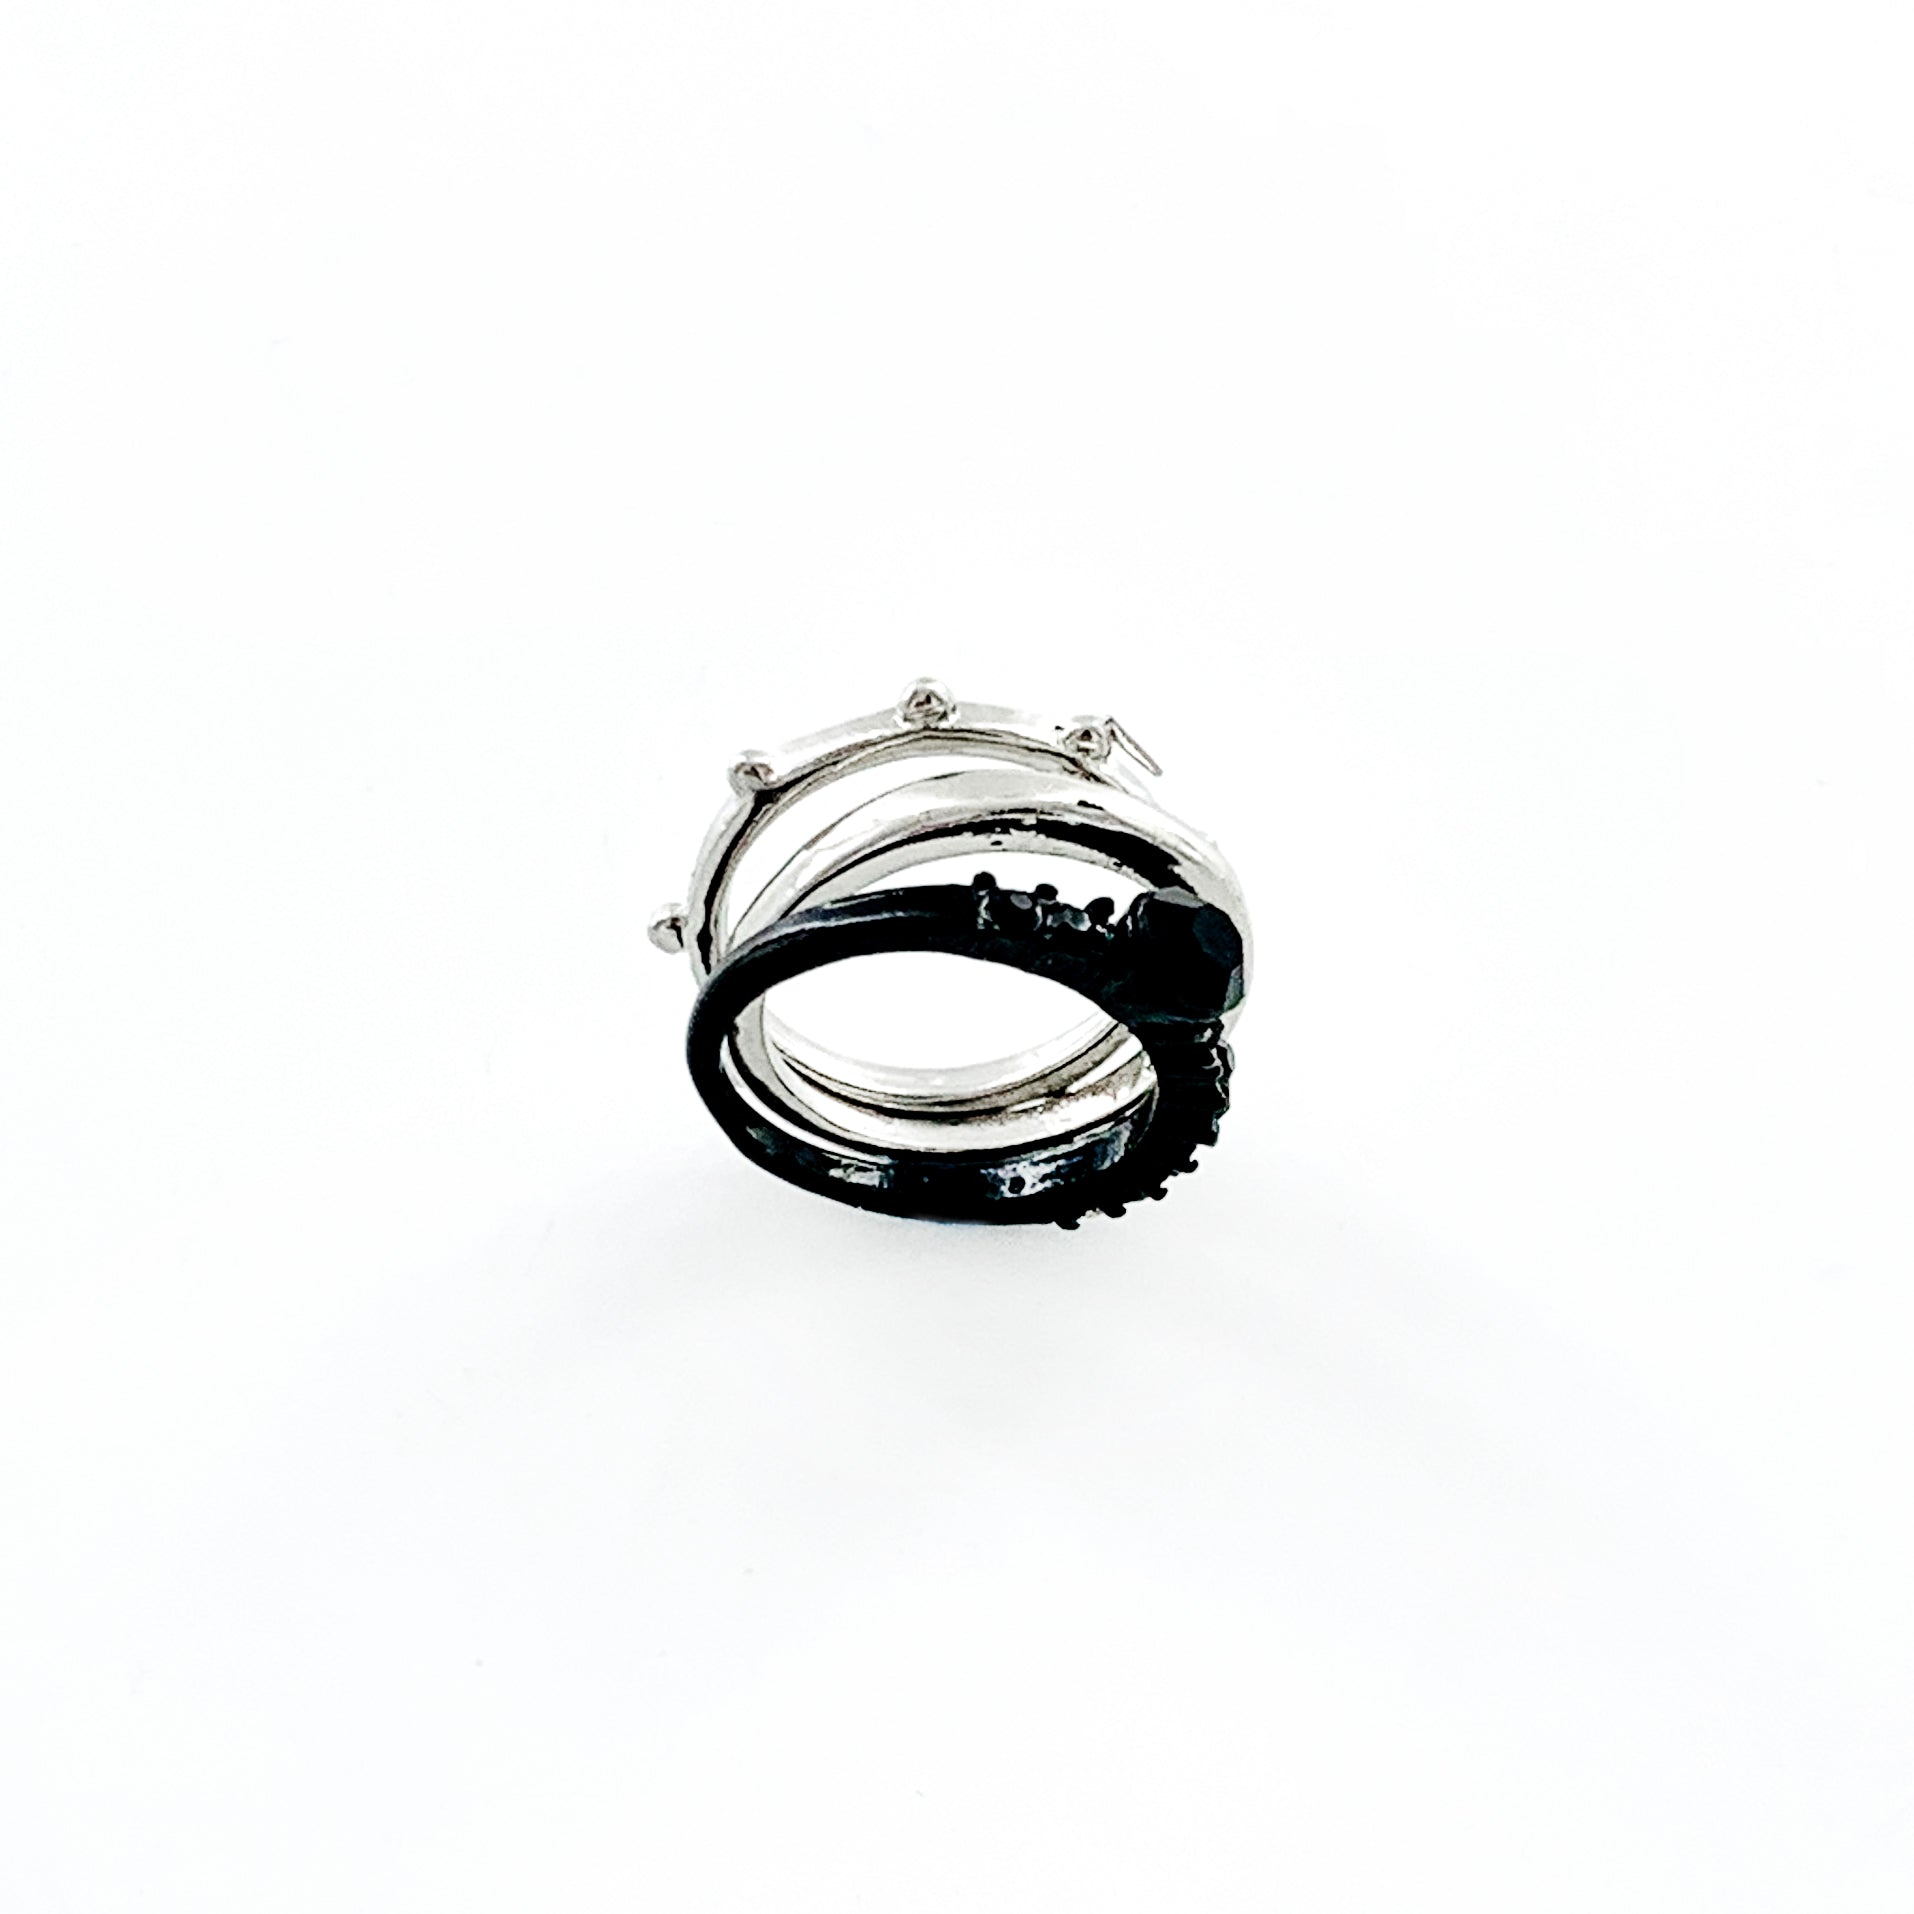 Triple rings in silver and black